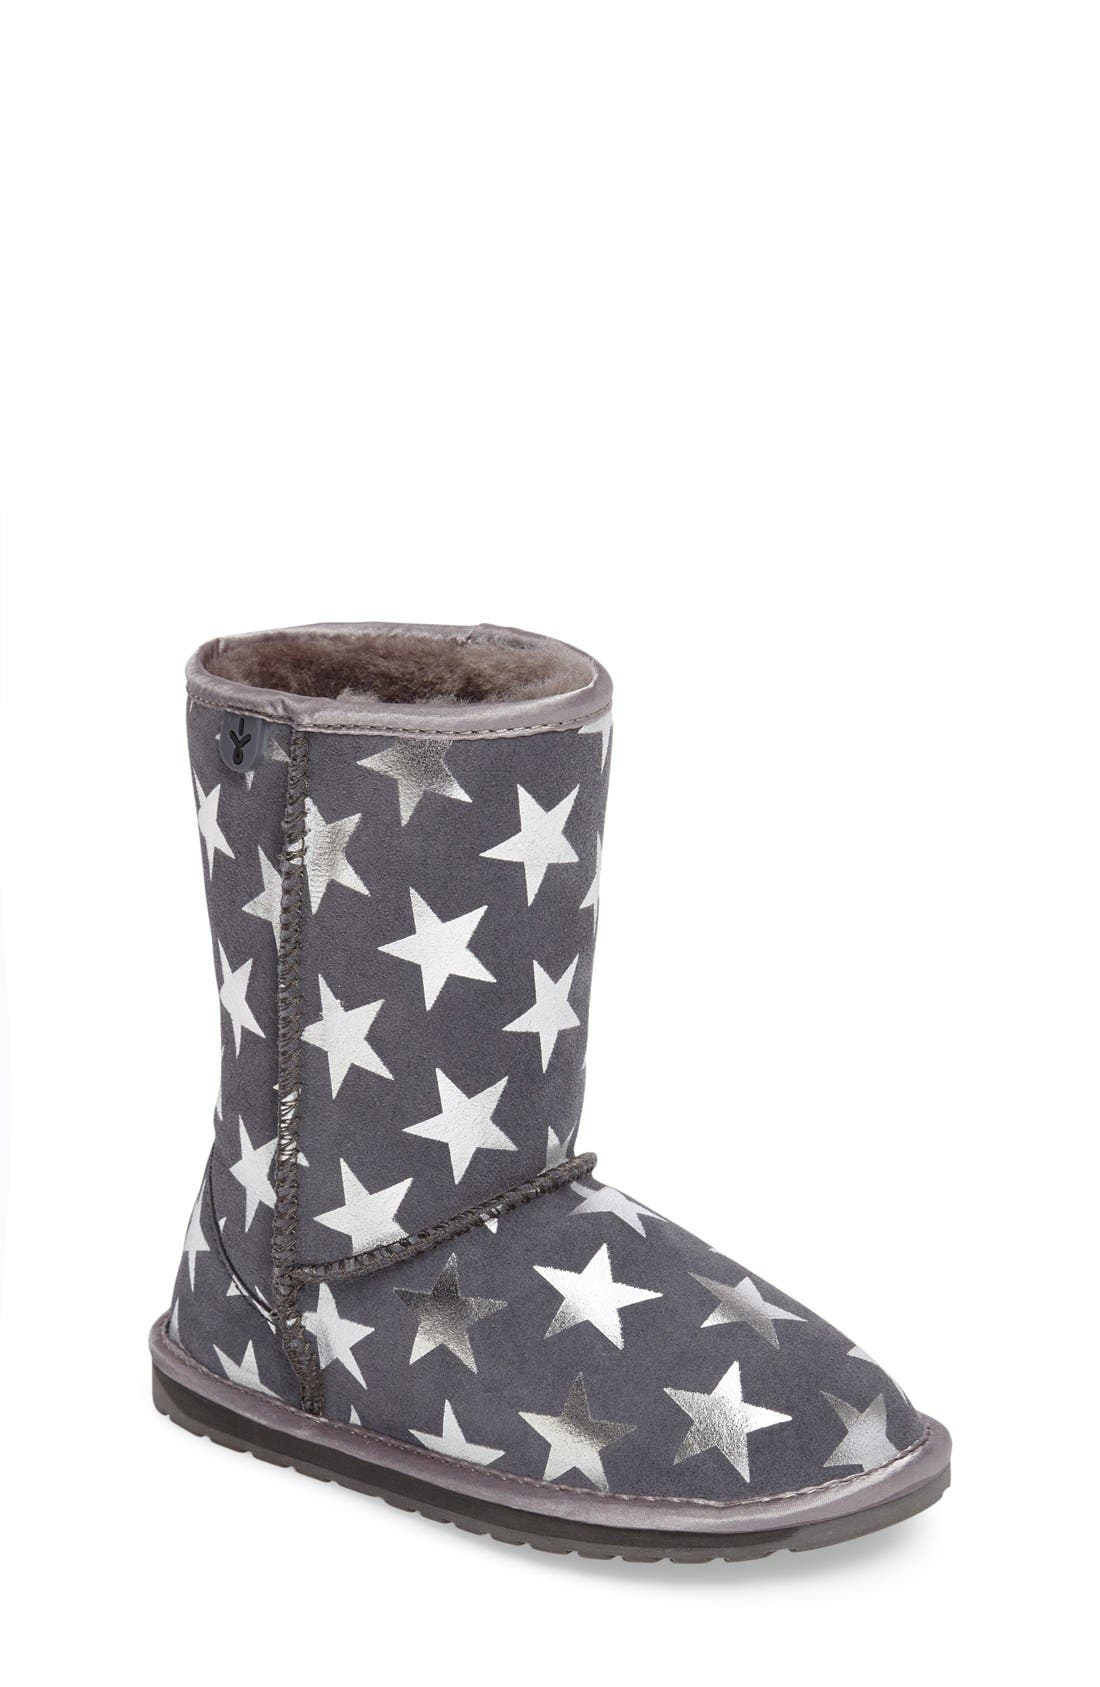 EMU Australia 'Starry Night' Boot (Toddler, Little Kid & Big Kid)